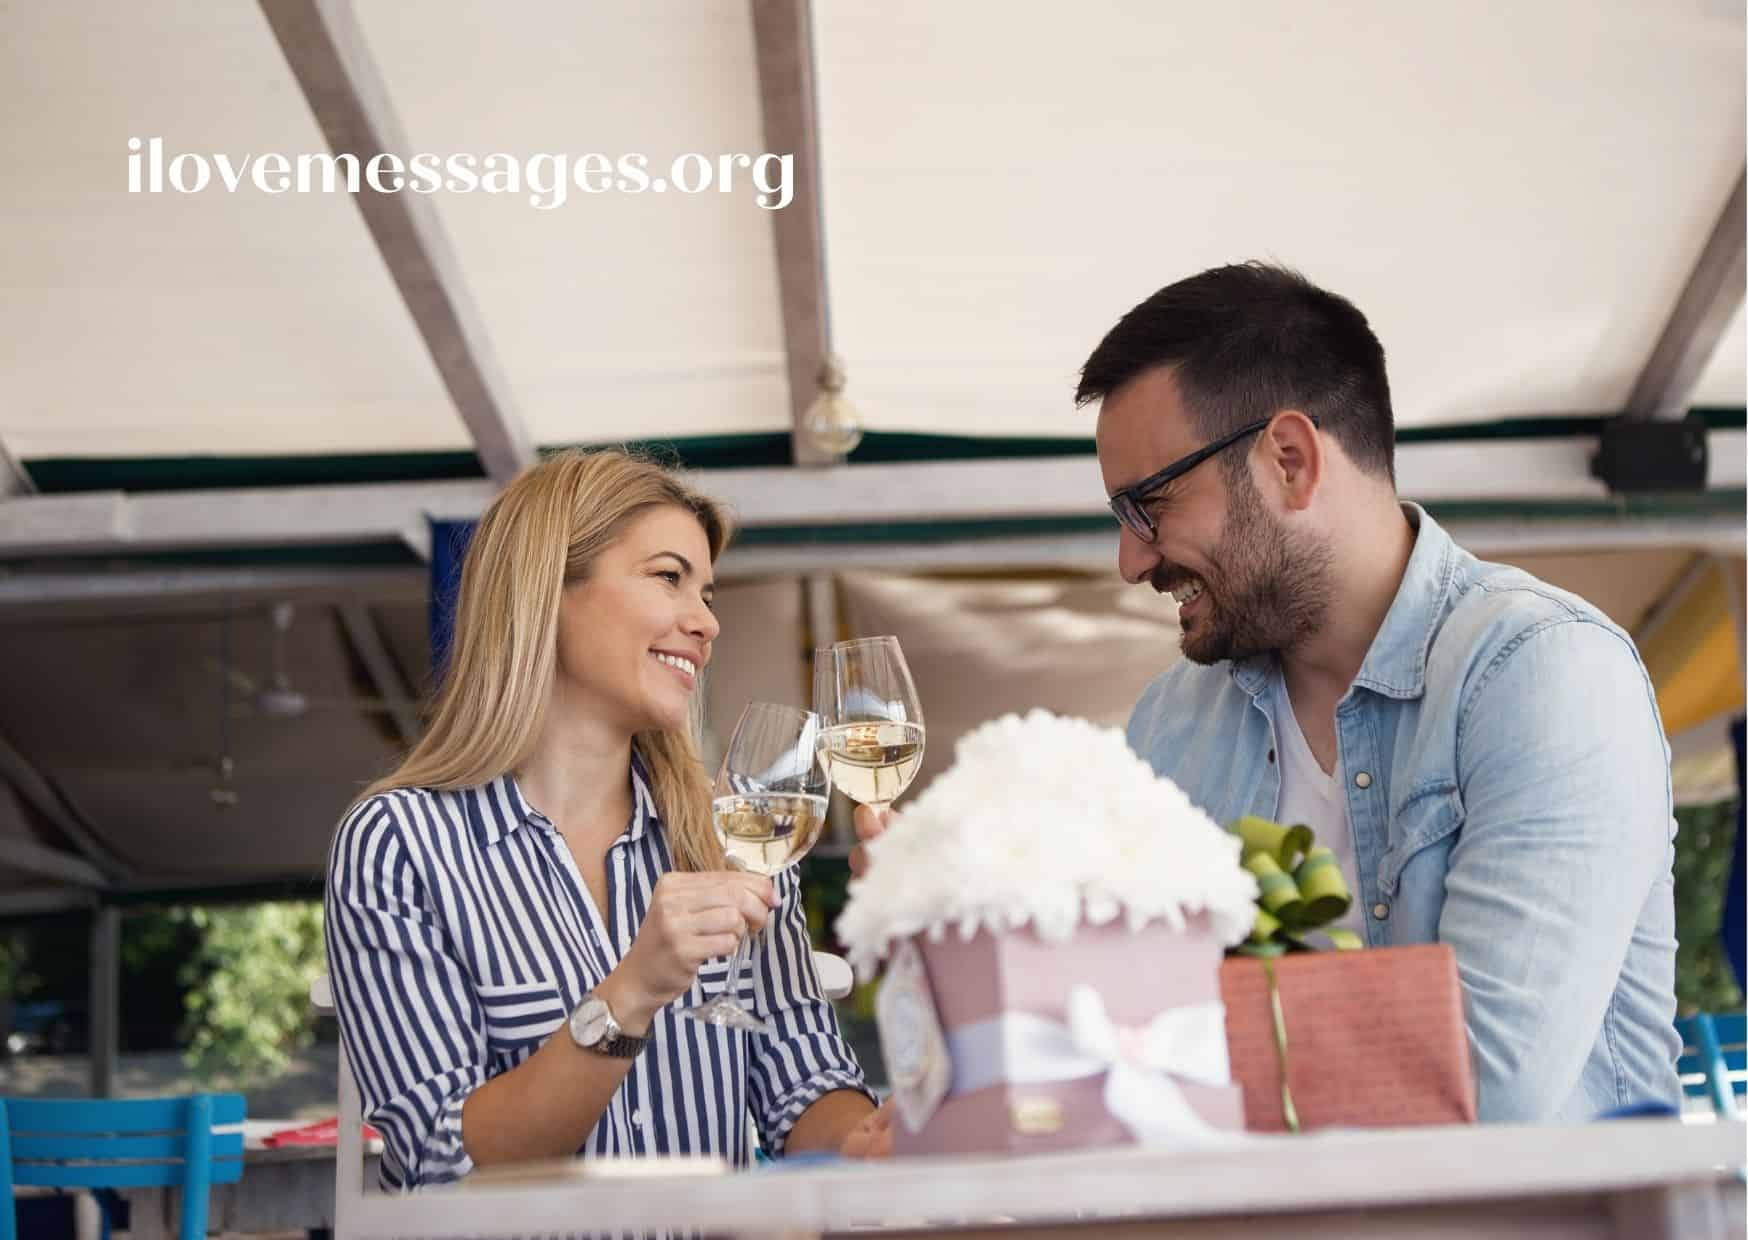 Wedding Anniversary Wishes for Husband: One of the most important stages of a blossoming relationship is the year of wedding anniversary wishes for husband